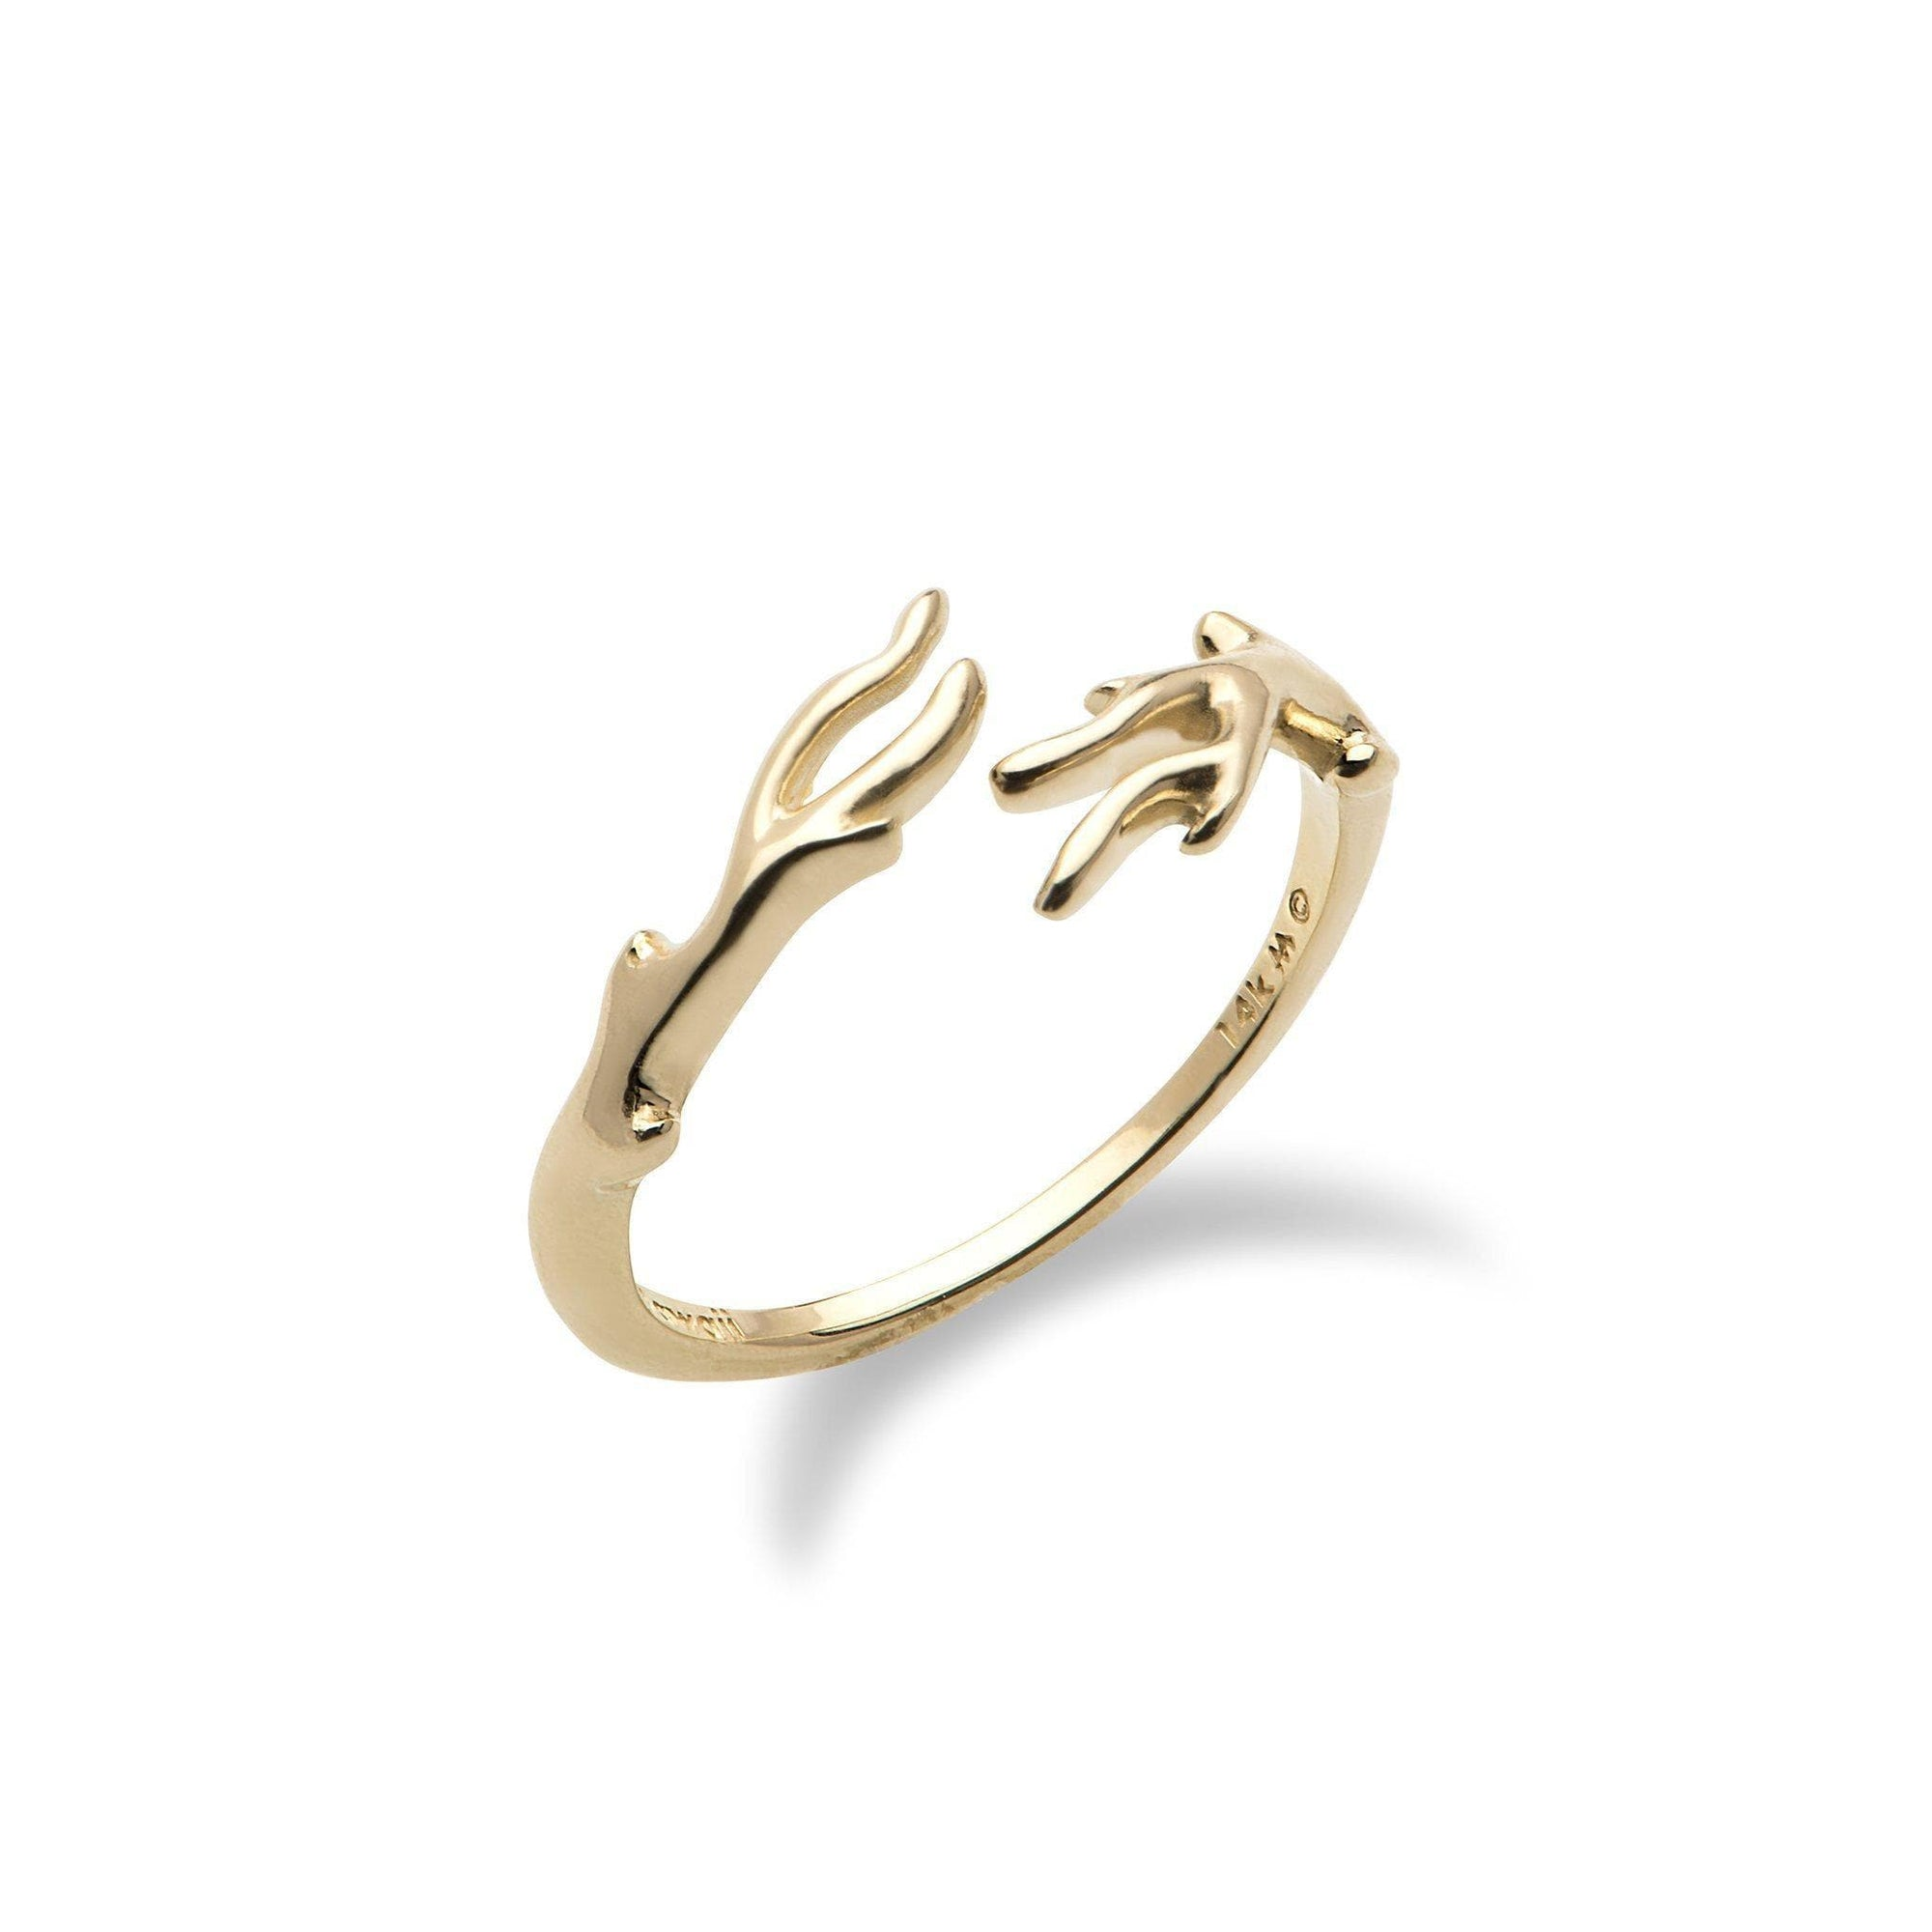 Hawaiian Heritage Bypass Ring in 14K Yellow Gold - Maui Divers Jewelry